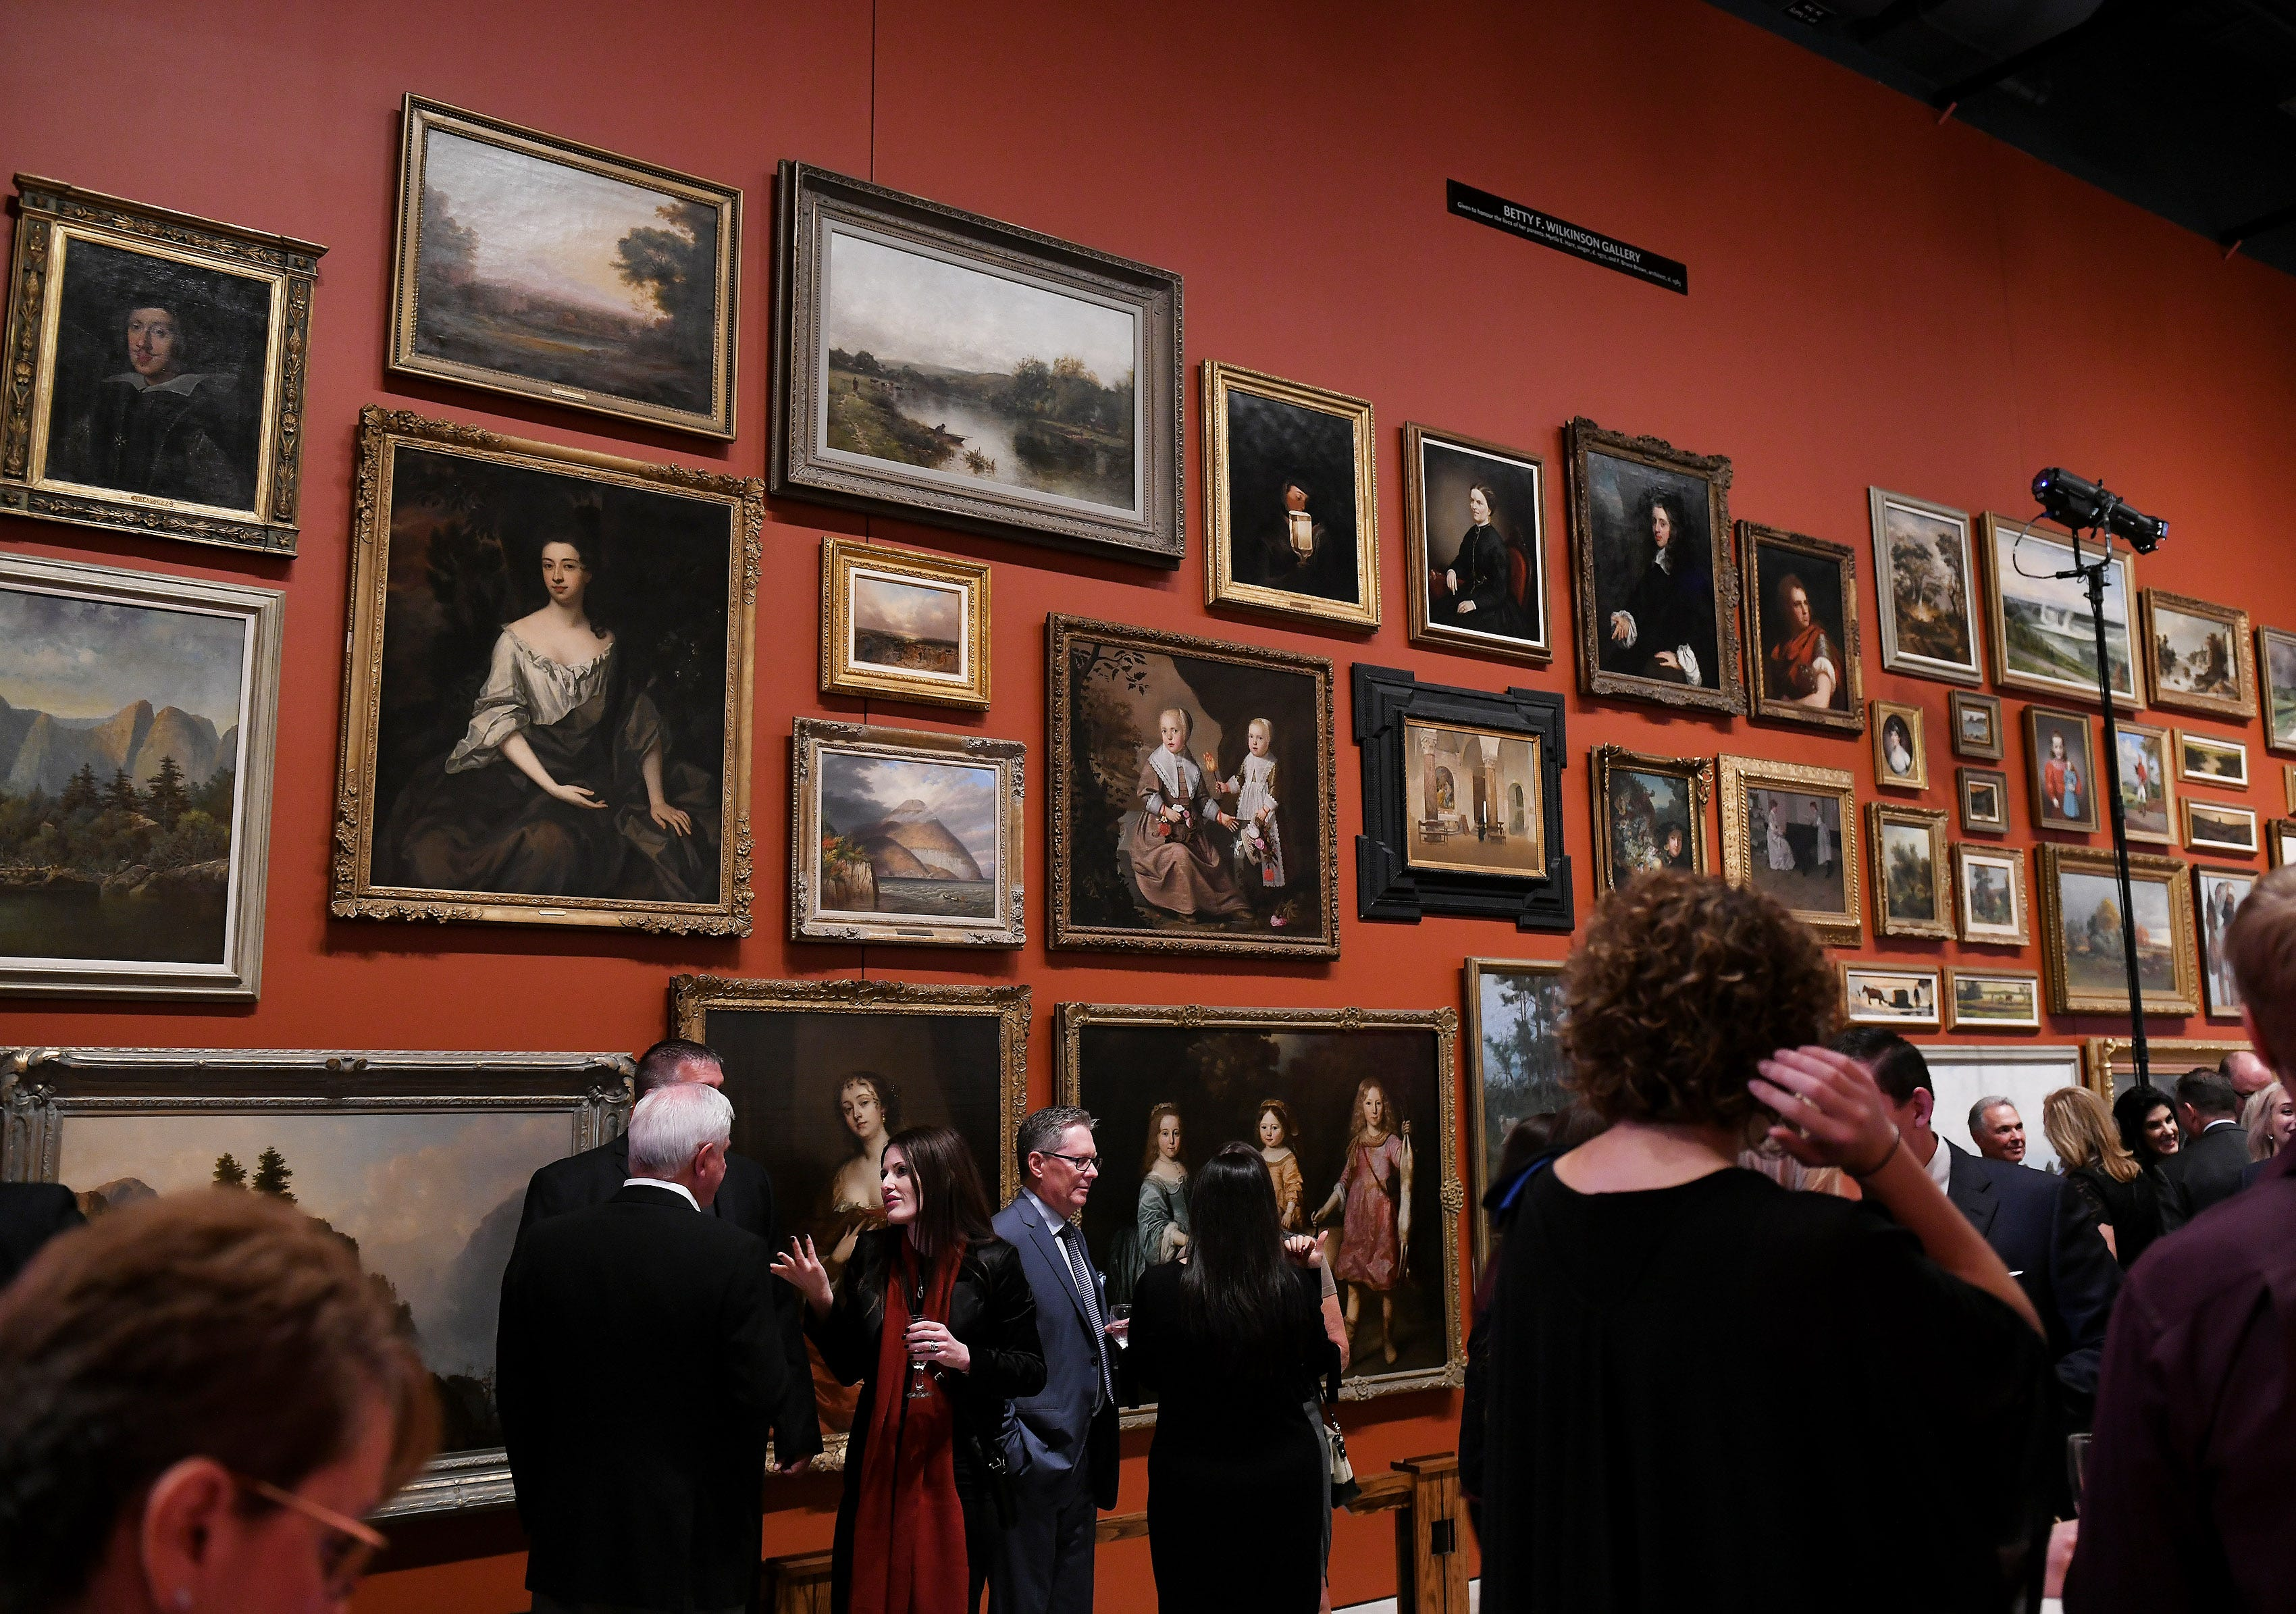 """Attendees wait for the Canadian prime minister Justin Trudeau speaks at an event billed as """"An Evening with Rt. Hon. Justin Trudeau."""" at the Windsor Gallery of Art in Windsor, Ontario on Oct 4, 2018."""